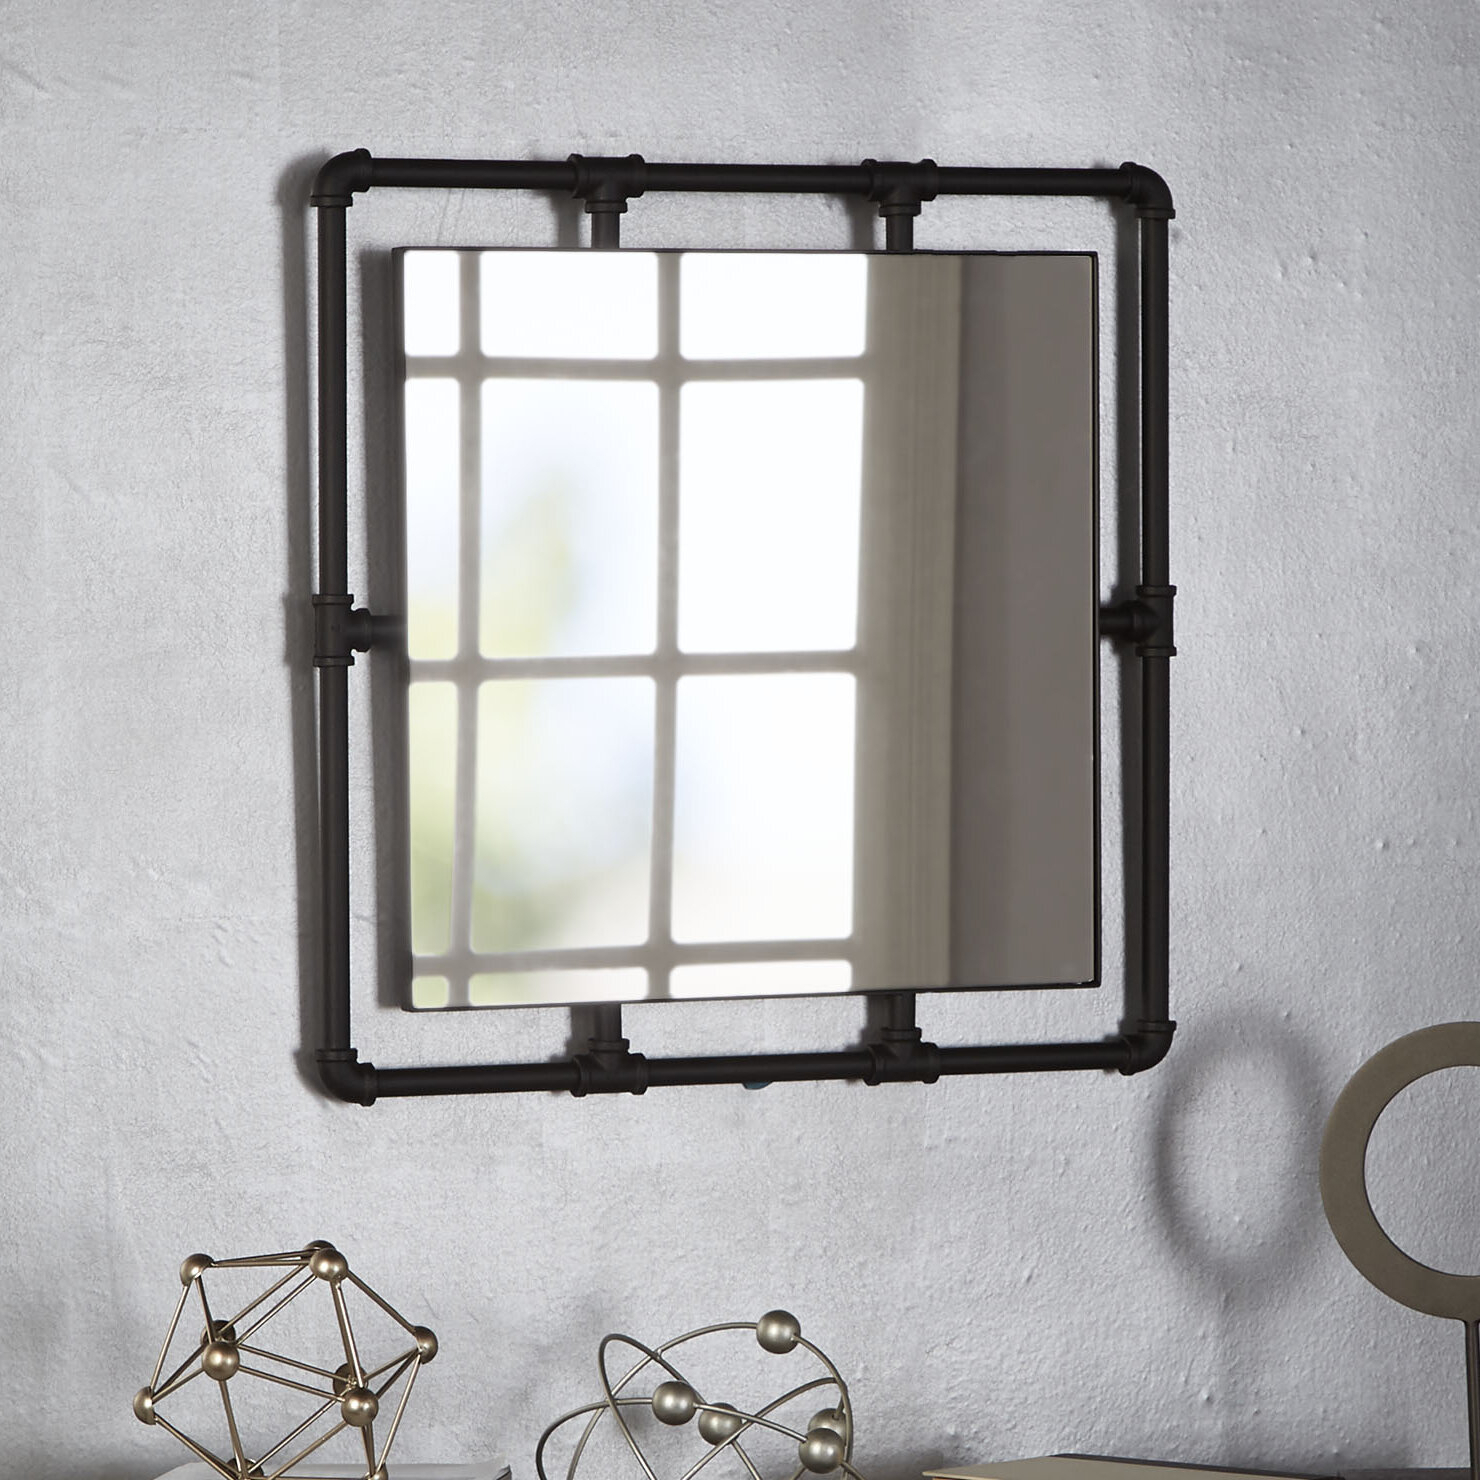 Seltzer Industrial Square Pipe Fitting Accent Mirror Inside Austin Industrial Accent Mirrors (View 20 of 30)